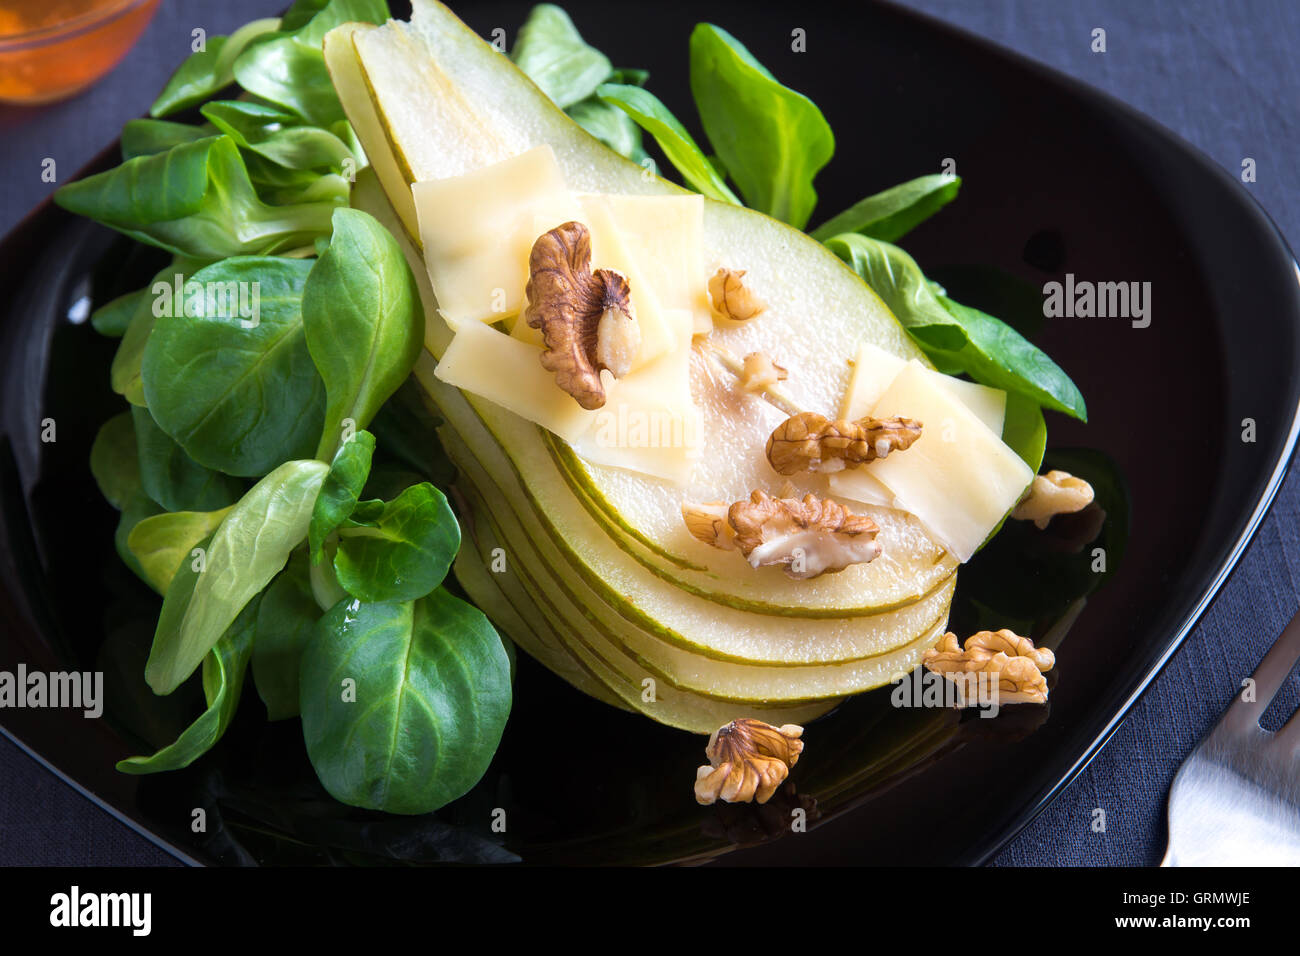 Pear salad with parmesan cheese and walnuts Stock Photo